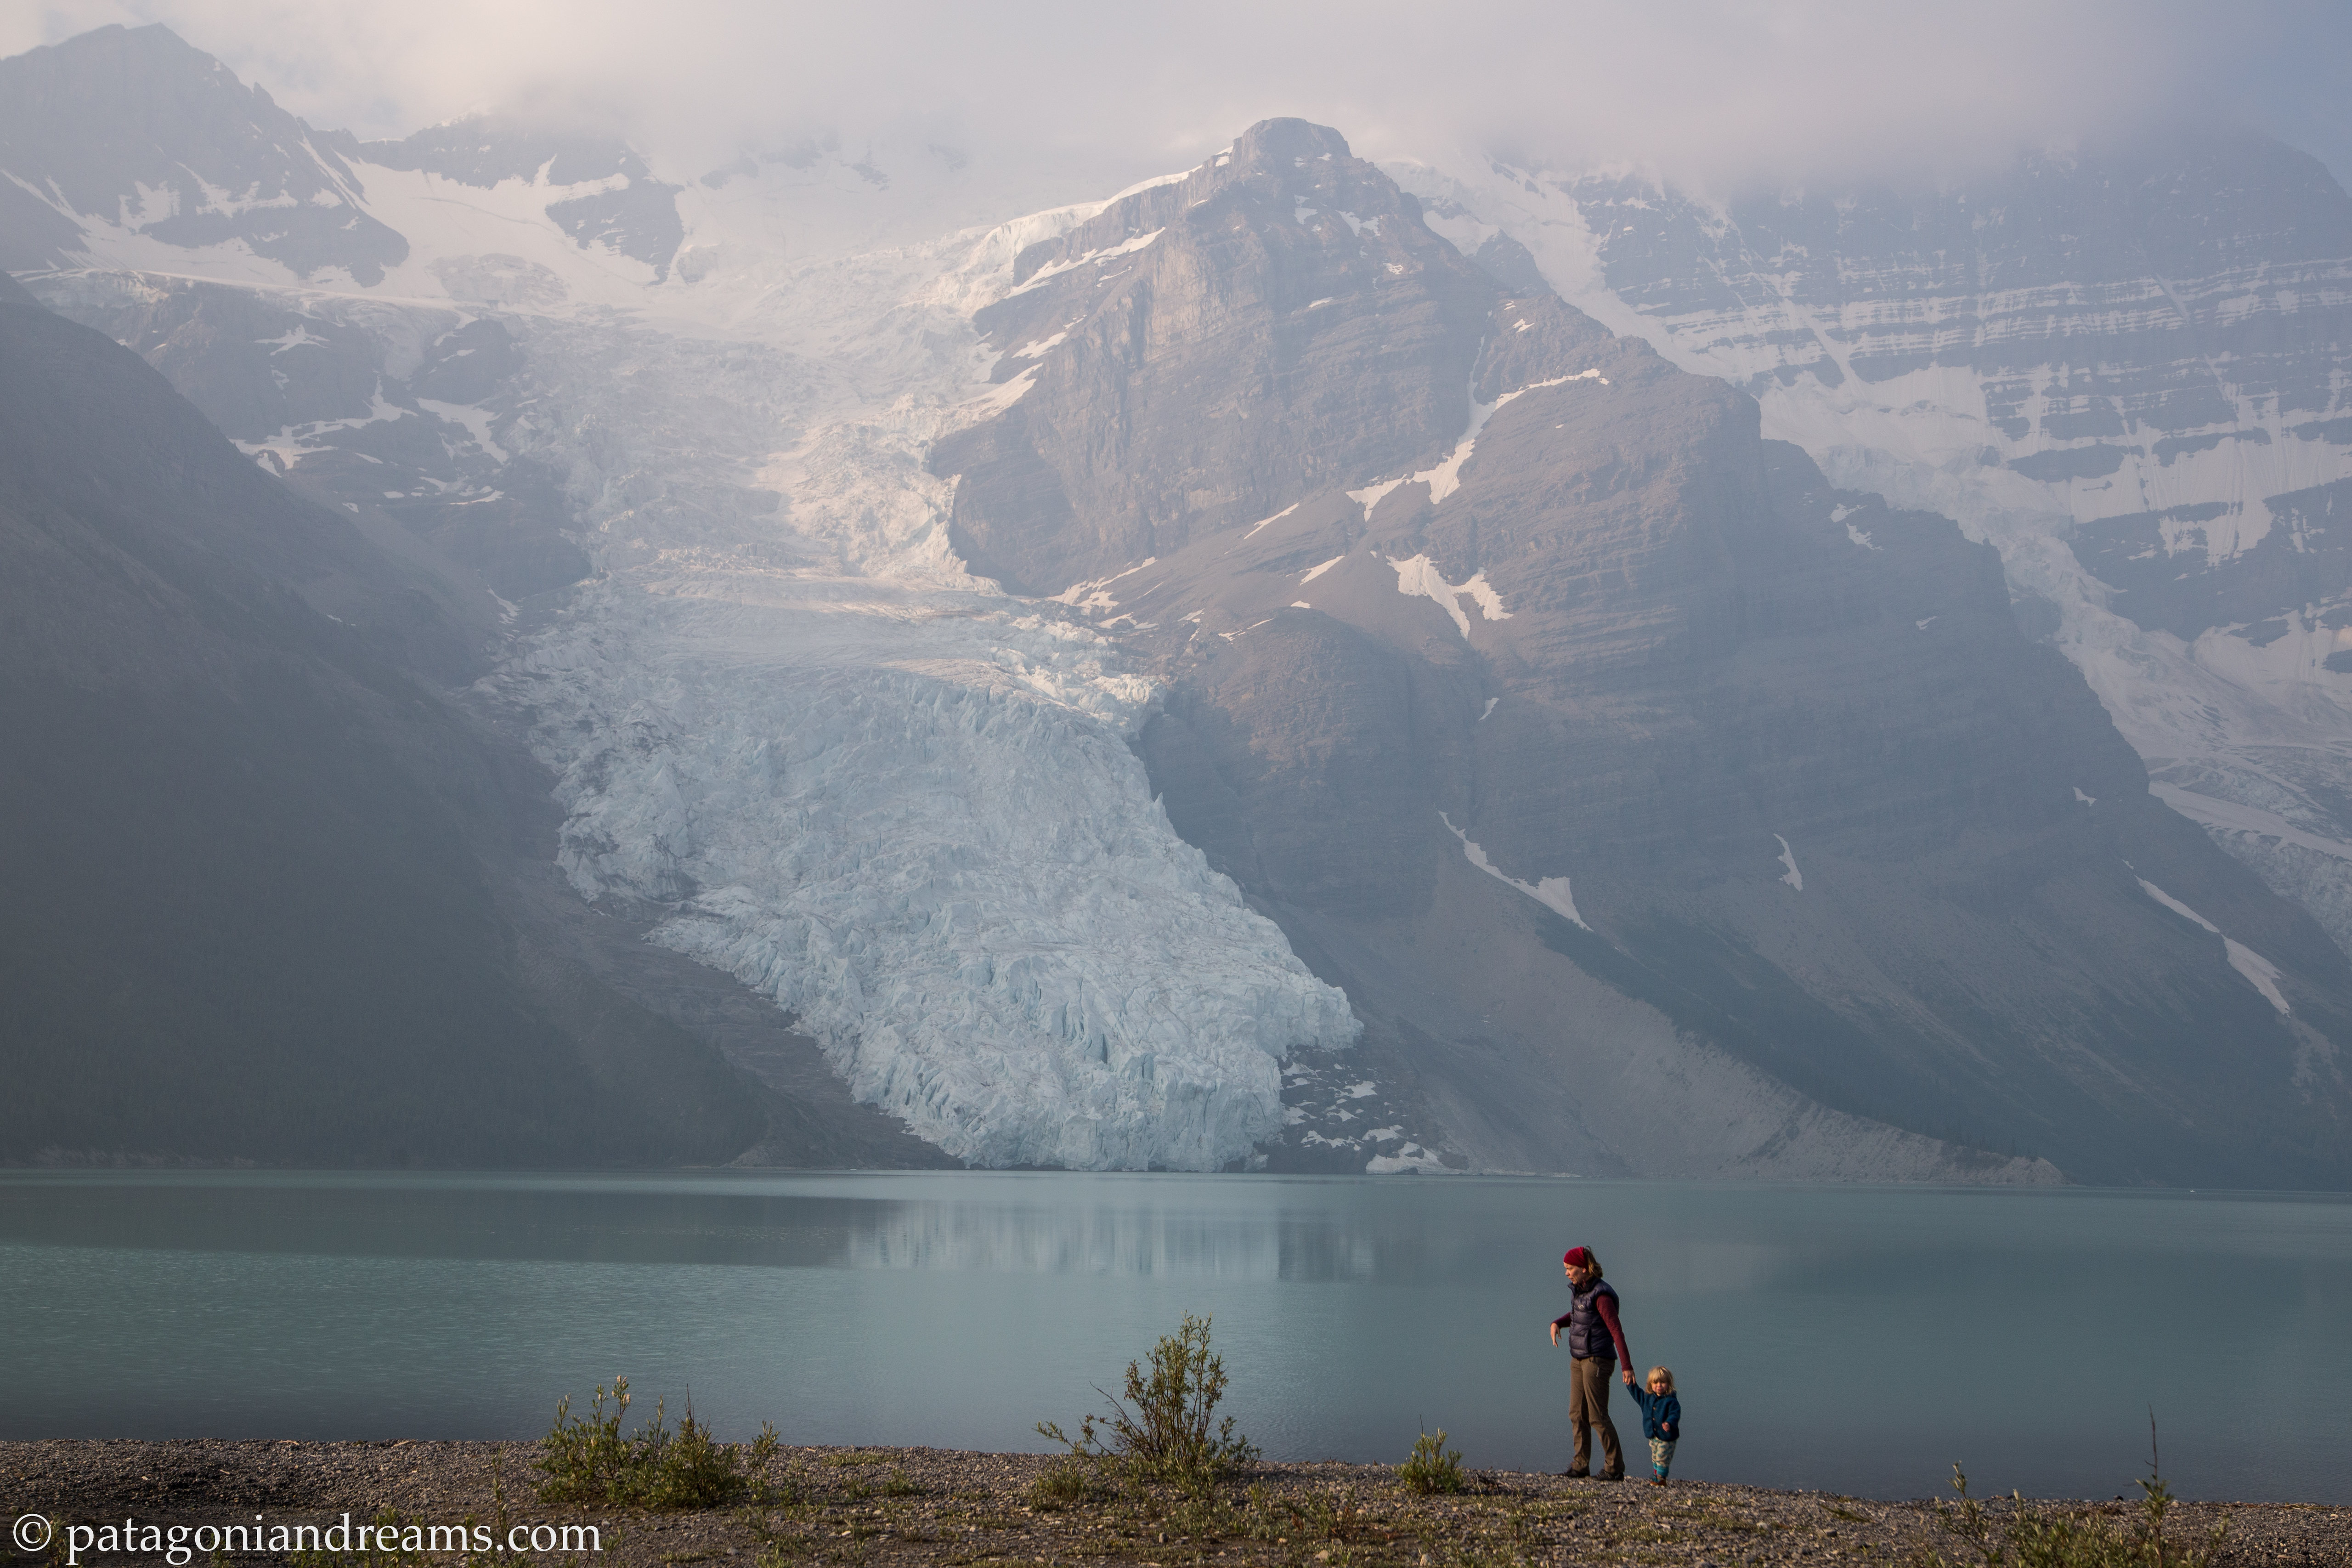 The Berg Lake Trail is a world-renowned backcountry hiking trail. Gaining just under 800 metres in 23 kilometres, the trail traverses three biogeoclimatic zones in the Mount Robson Provincial Park, British Columbia, Canada.